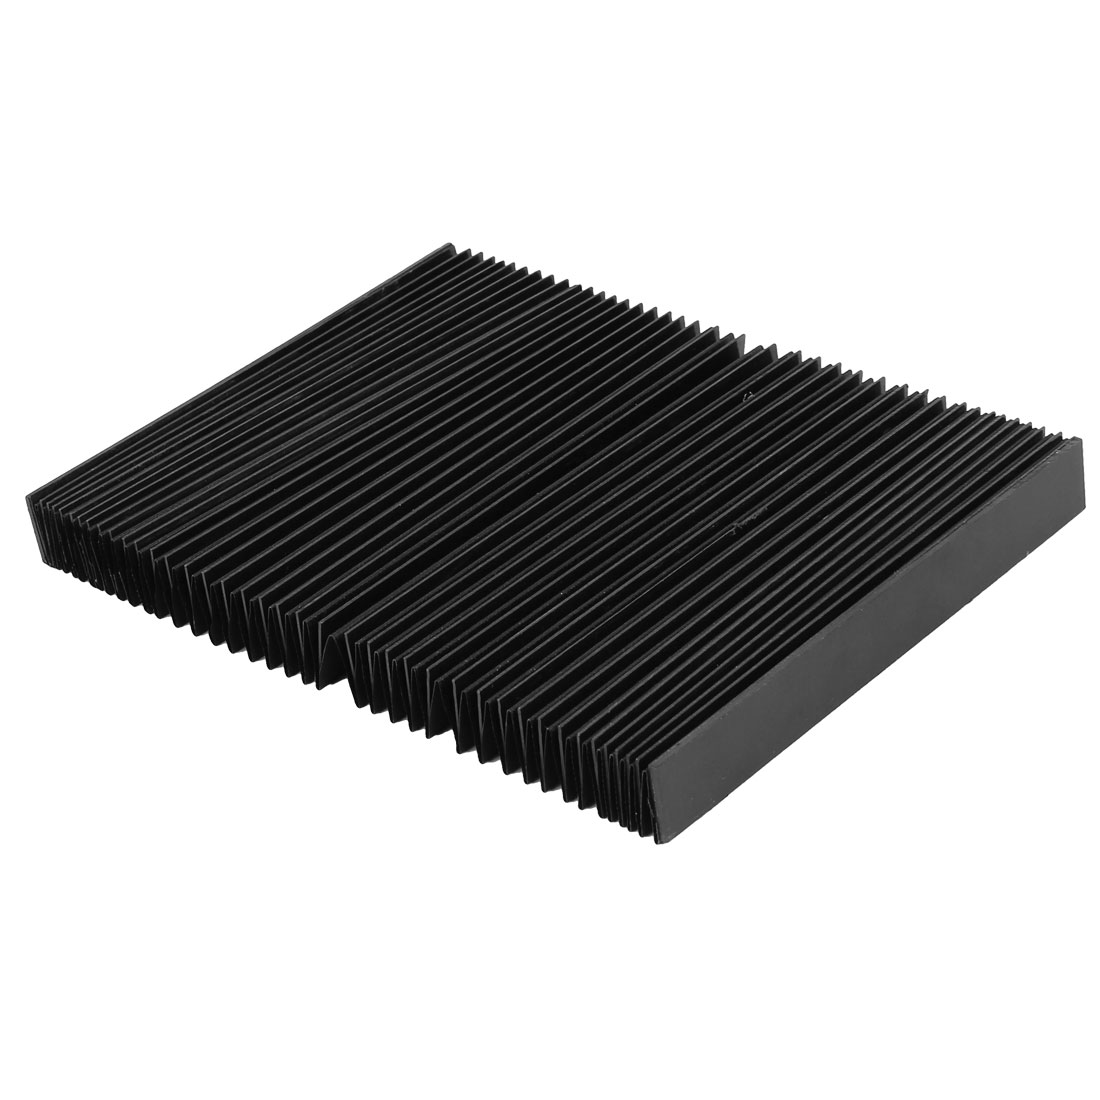 CNC Machine Fitting Foldable Accordion Dust Protective Cover Black 170mm x 20mm